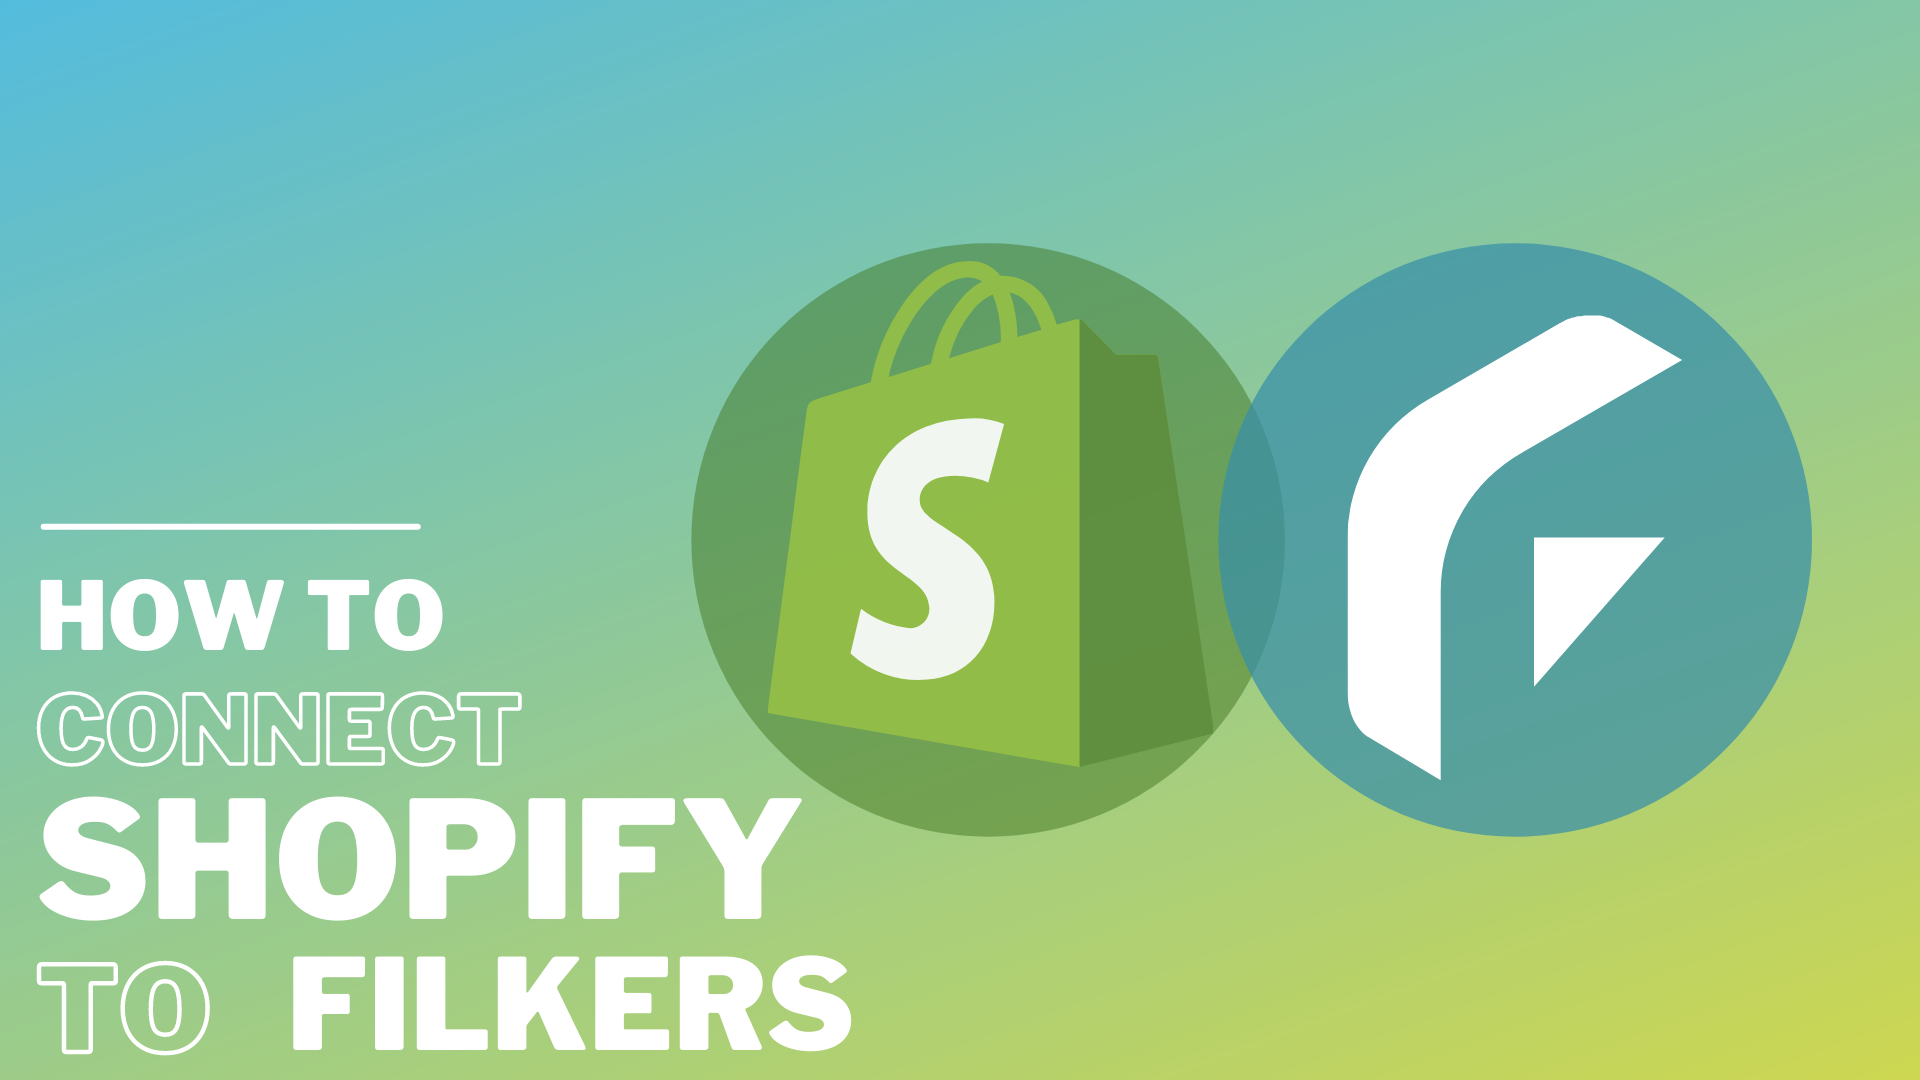 How to connect Shopify with Filkers